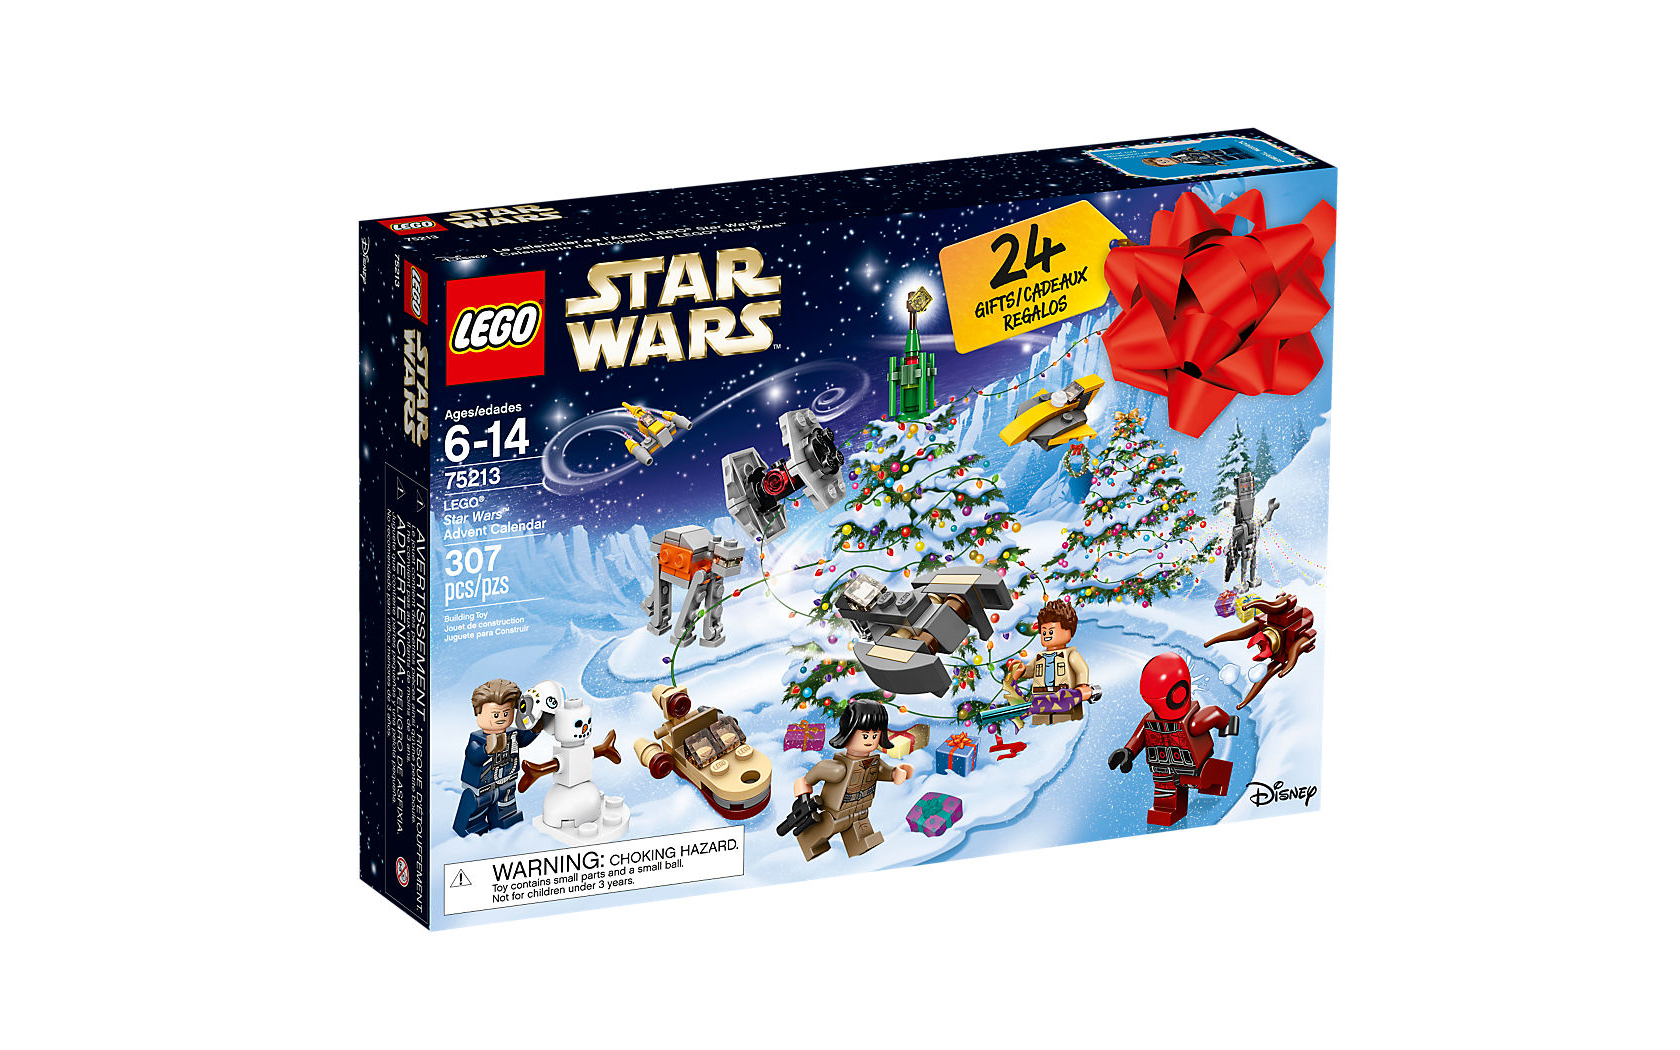 Advento kalendorius LEGO Star Wars™ (75213)